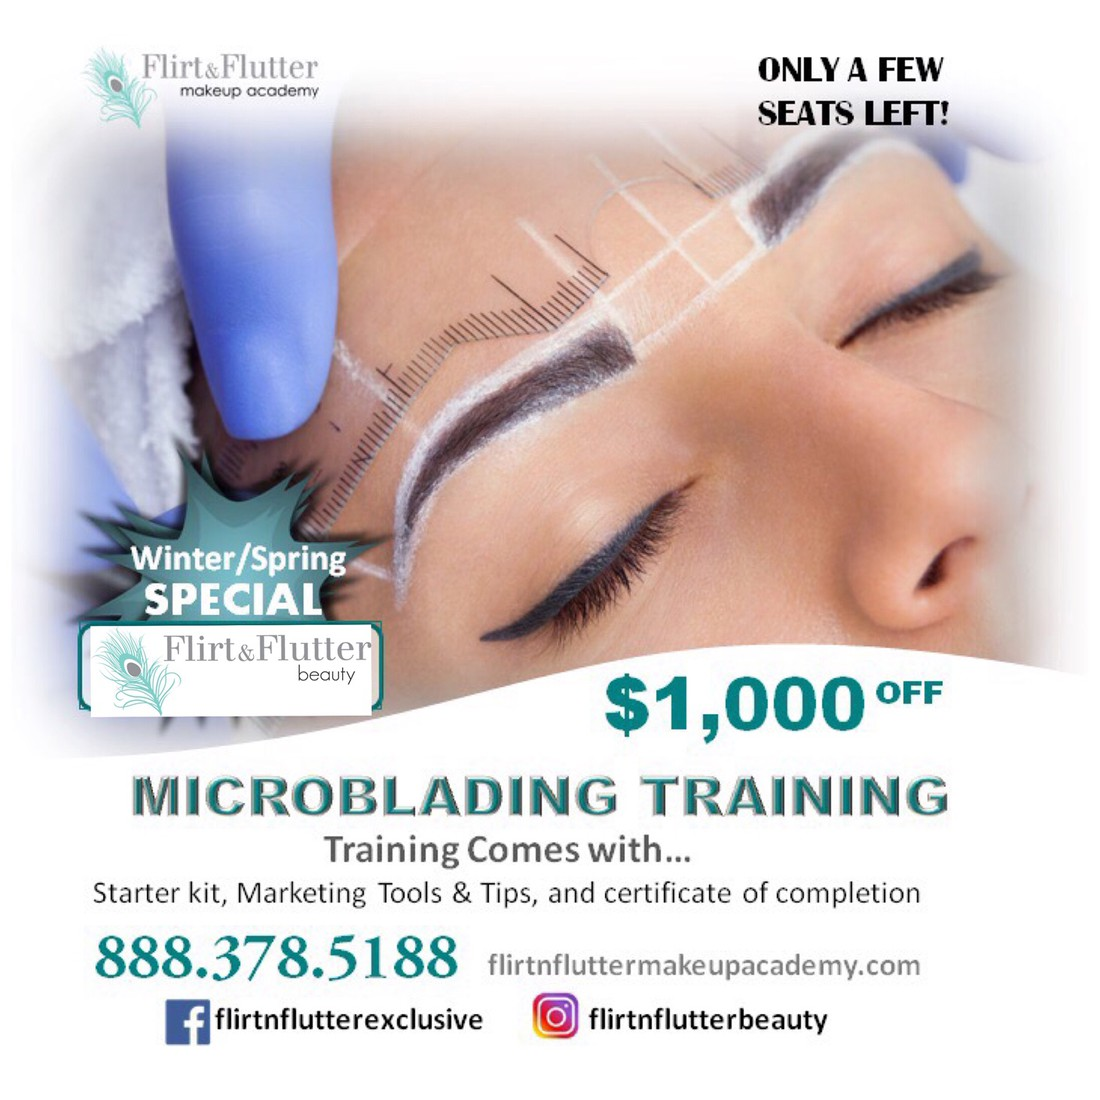 New York Microblading Training | Smore Newsletters for Business